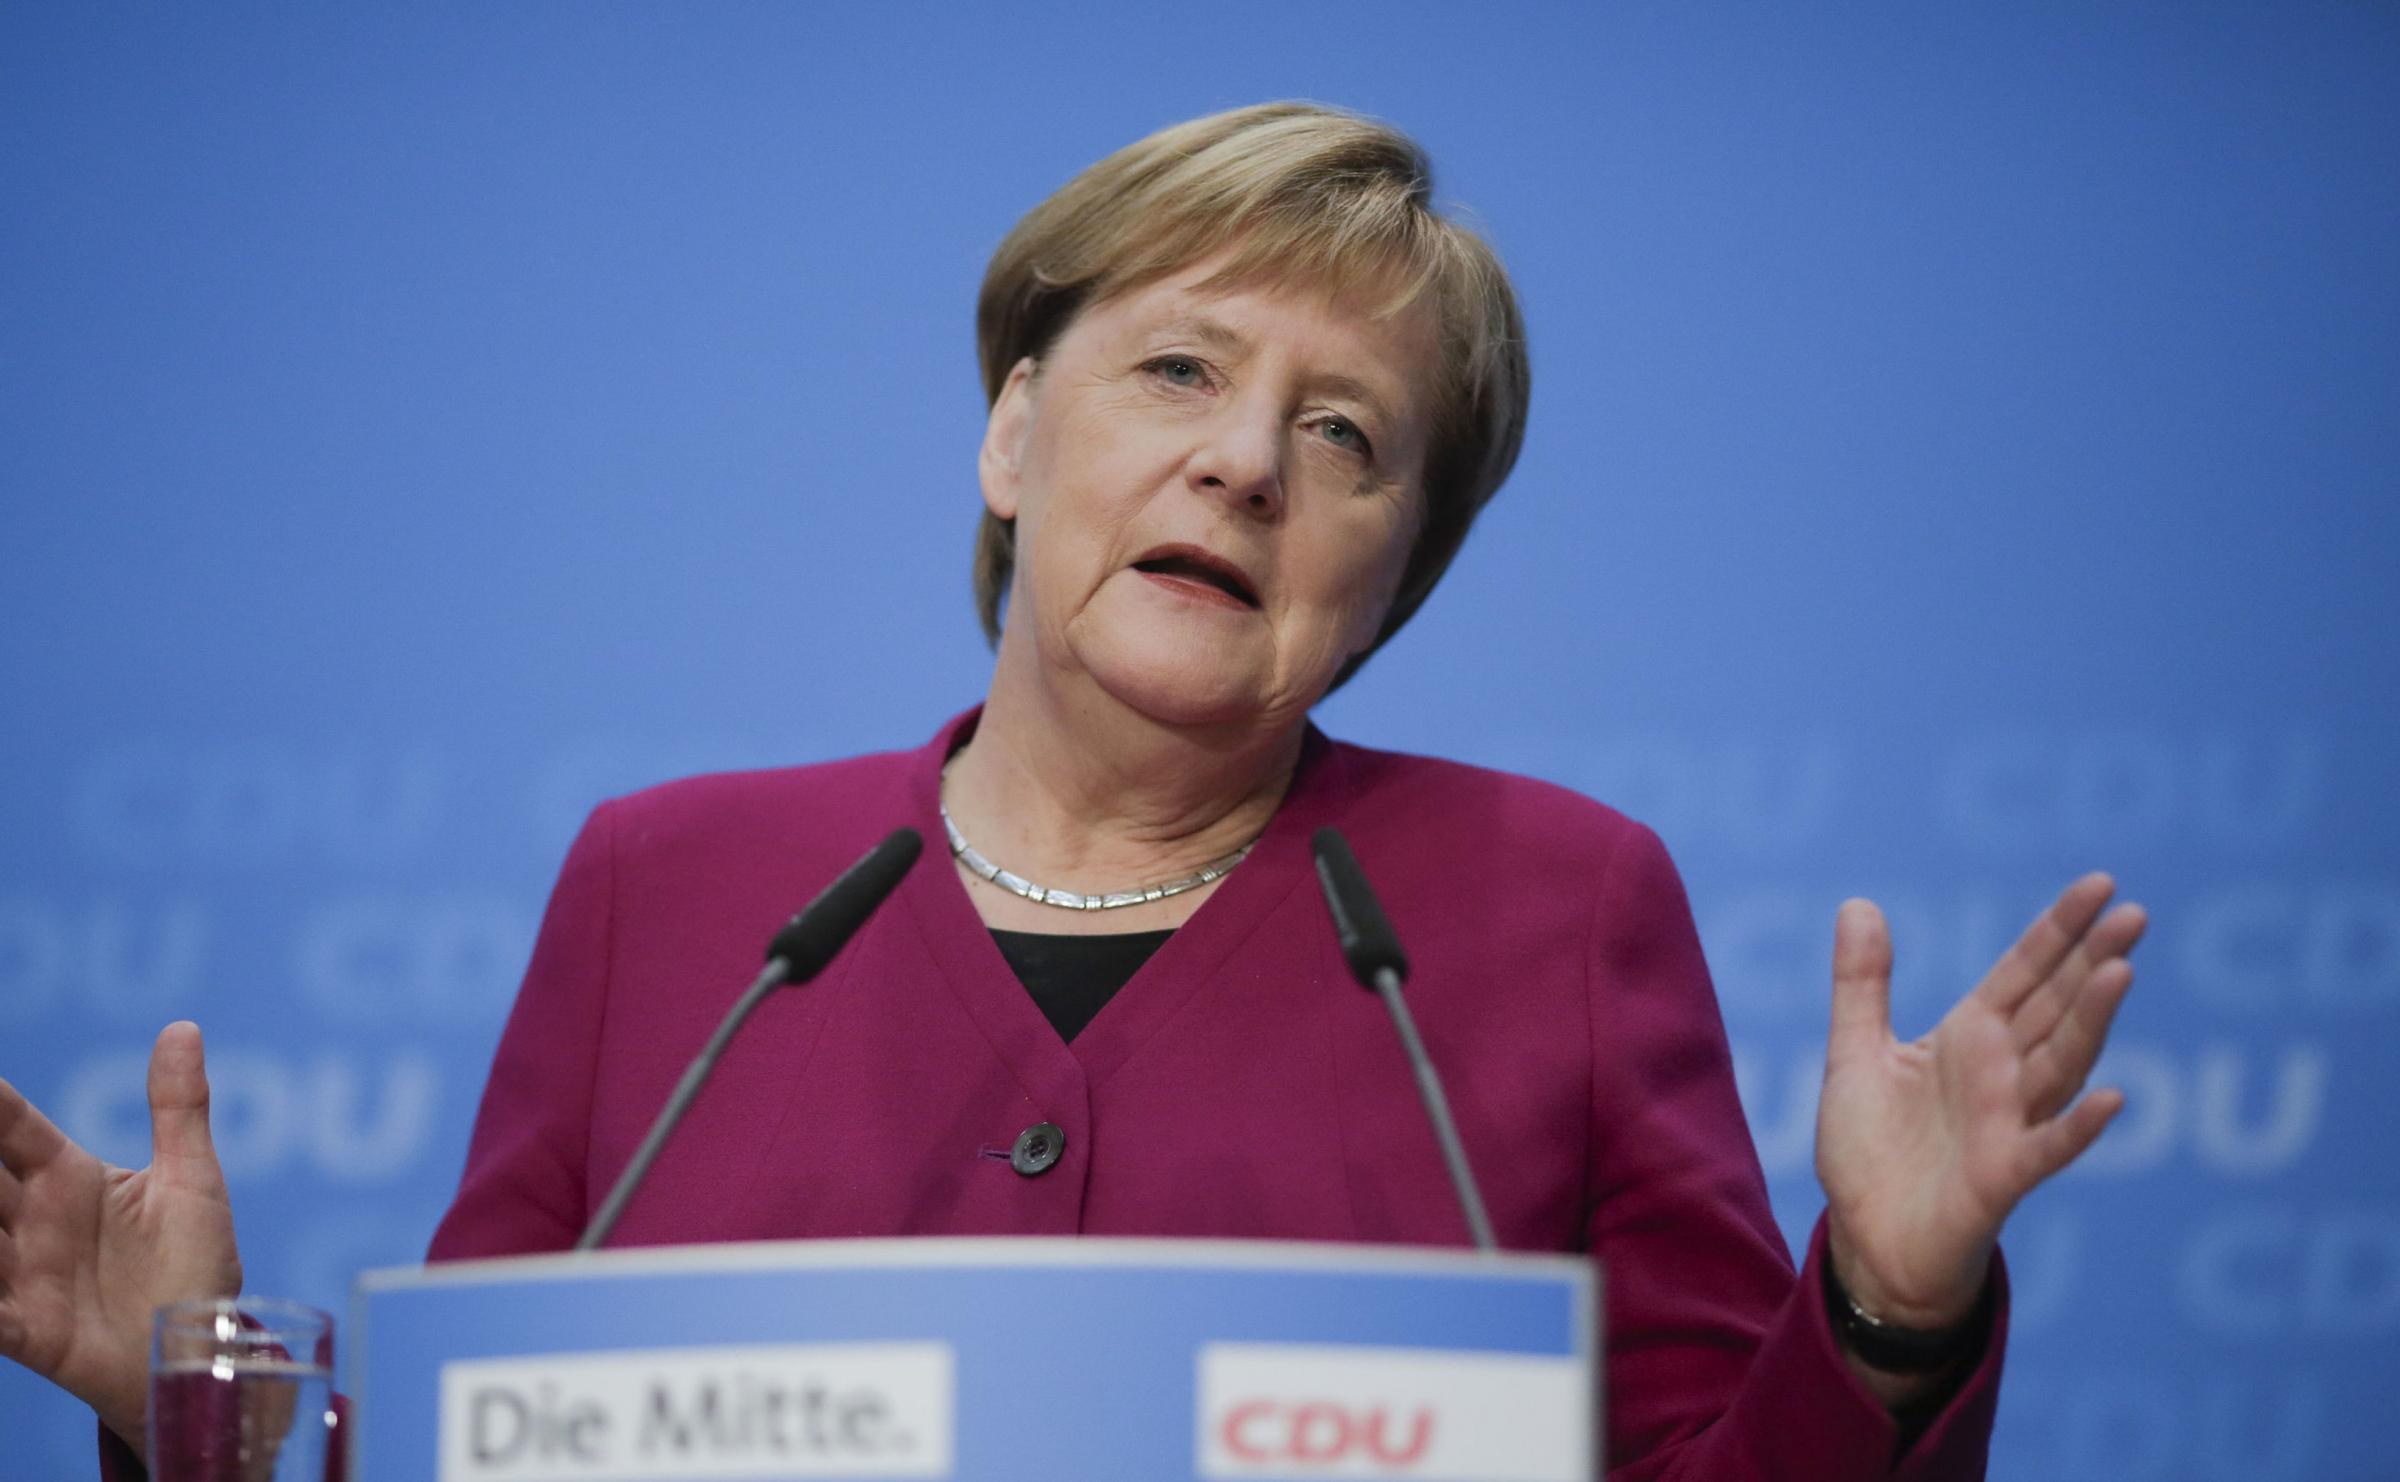 A spokeswoman for Merkel said the government was taking the matter 'very seriously'